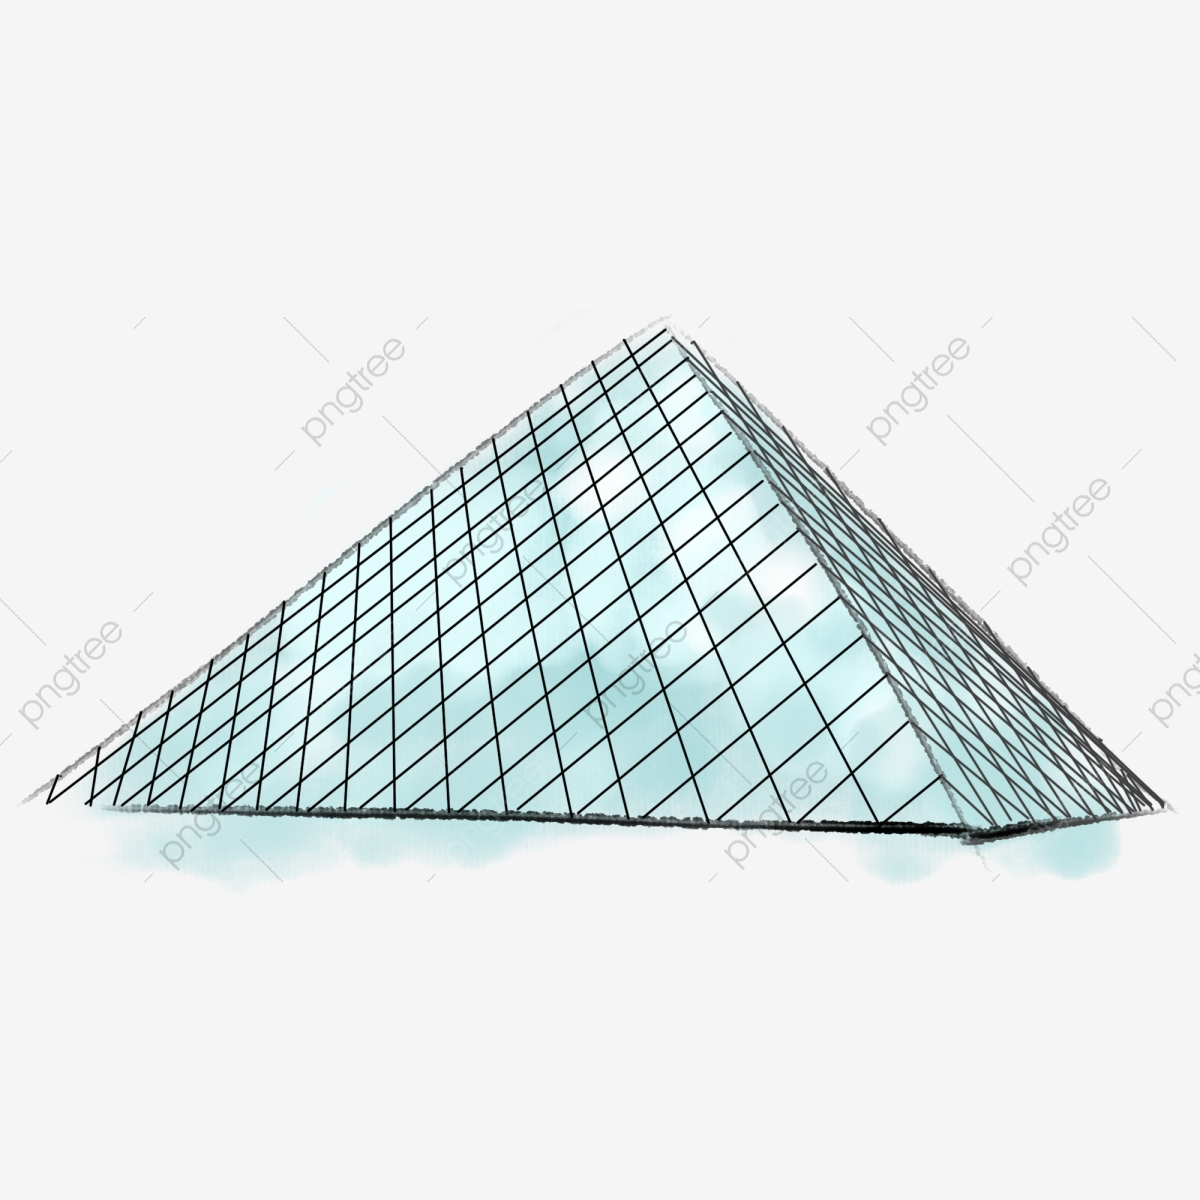 Louvre Glass Pyramid Hand Drawn Glass Pyramid Of The Louvre.